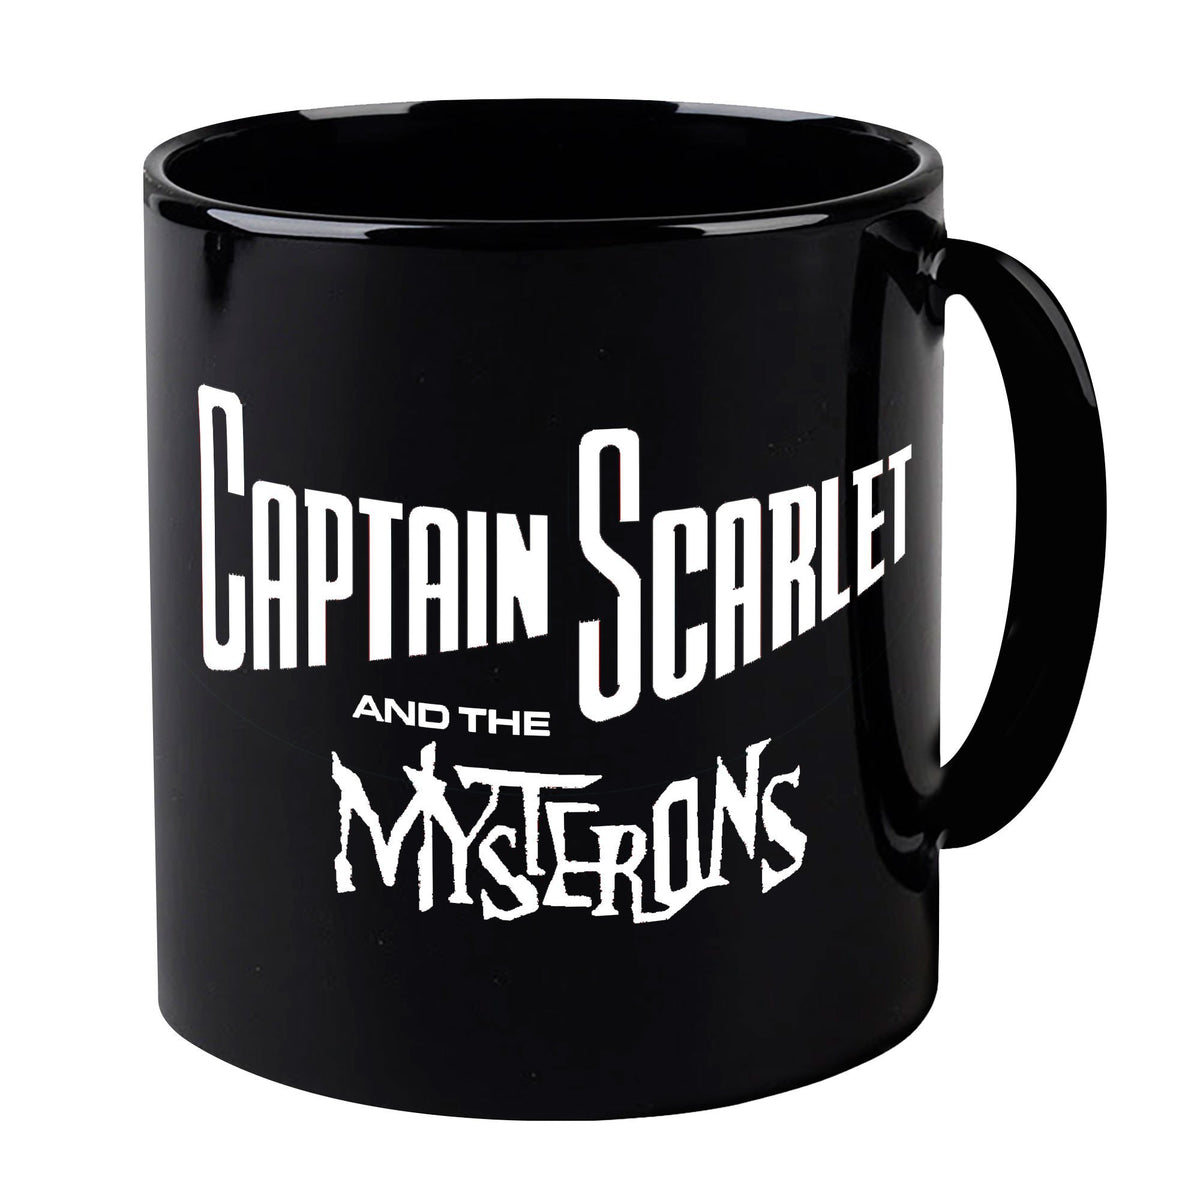 Captain Scarlet Classic White Logo Mug [Official & Exclusive] - The Gerry Anderson Store